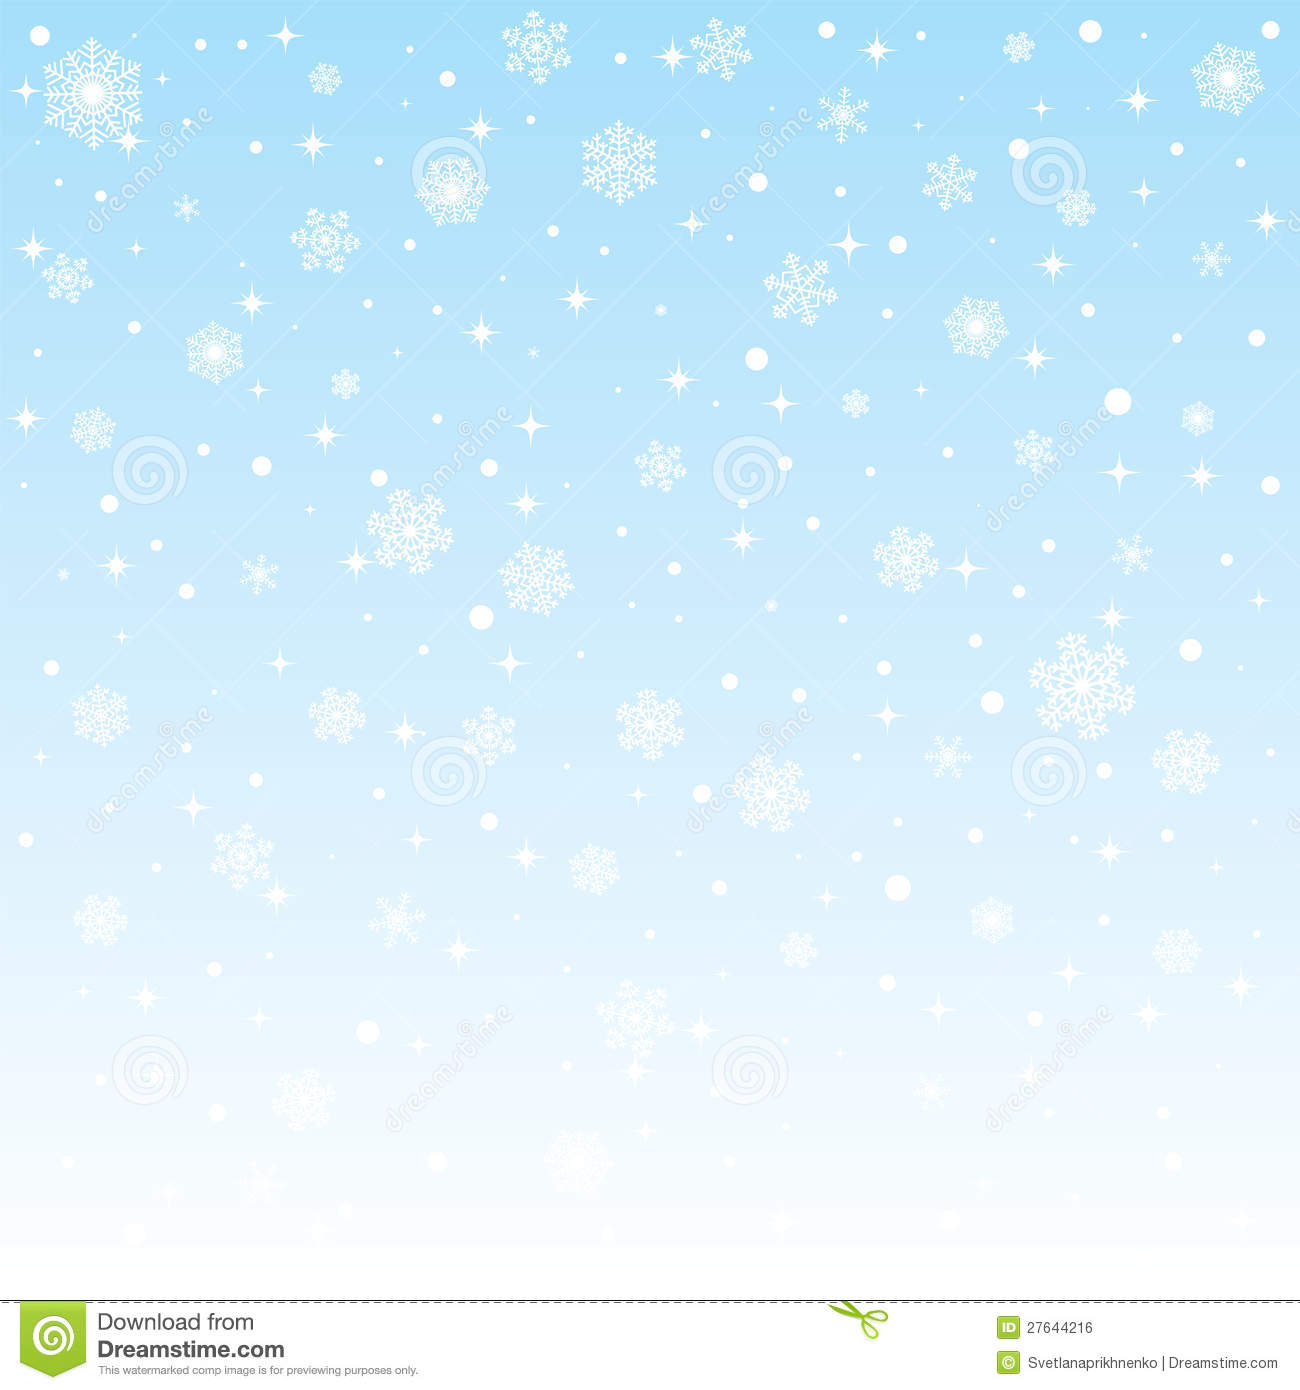 Snow Falling Wallpaper Download Christmas Frozen Background With Snowflakes Stock Vector